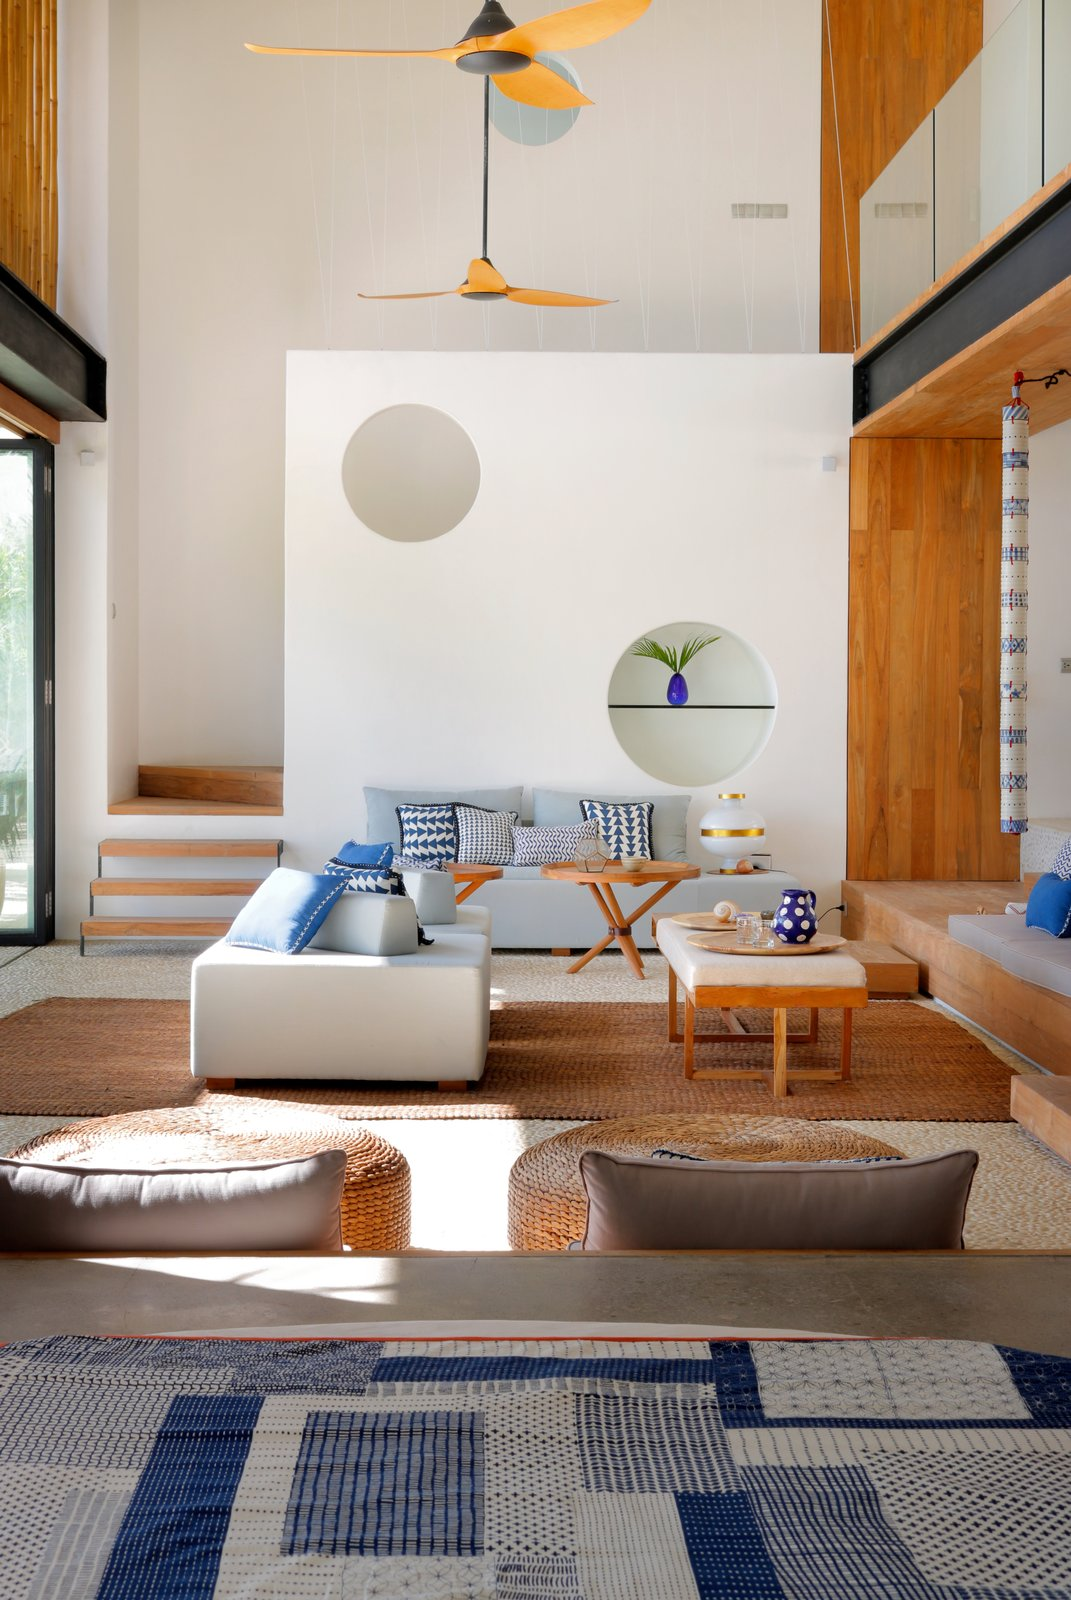 "Living, Sofa, Ottomans, Coffee Tables, and Rug ""Blue and white tones came up very often during our conversations, and the fact that the property was sitting right on the ocean made it feel like a good fit for their vision,"" adds Audrito.    Best Living Photos from Fall in Love With Bali at This Tropical, Modern Retreat"